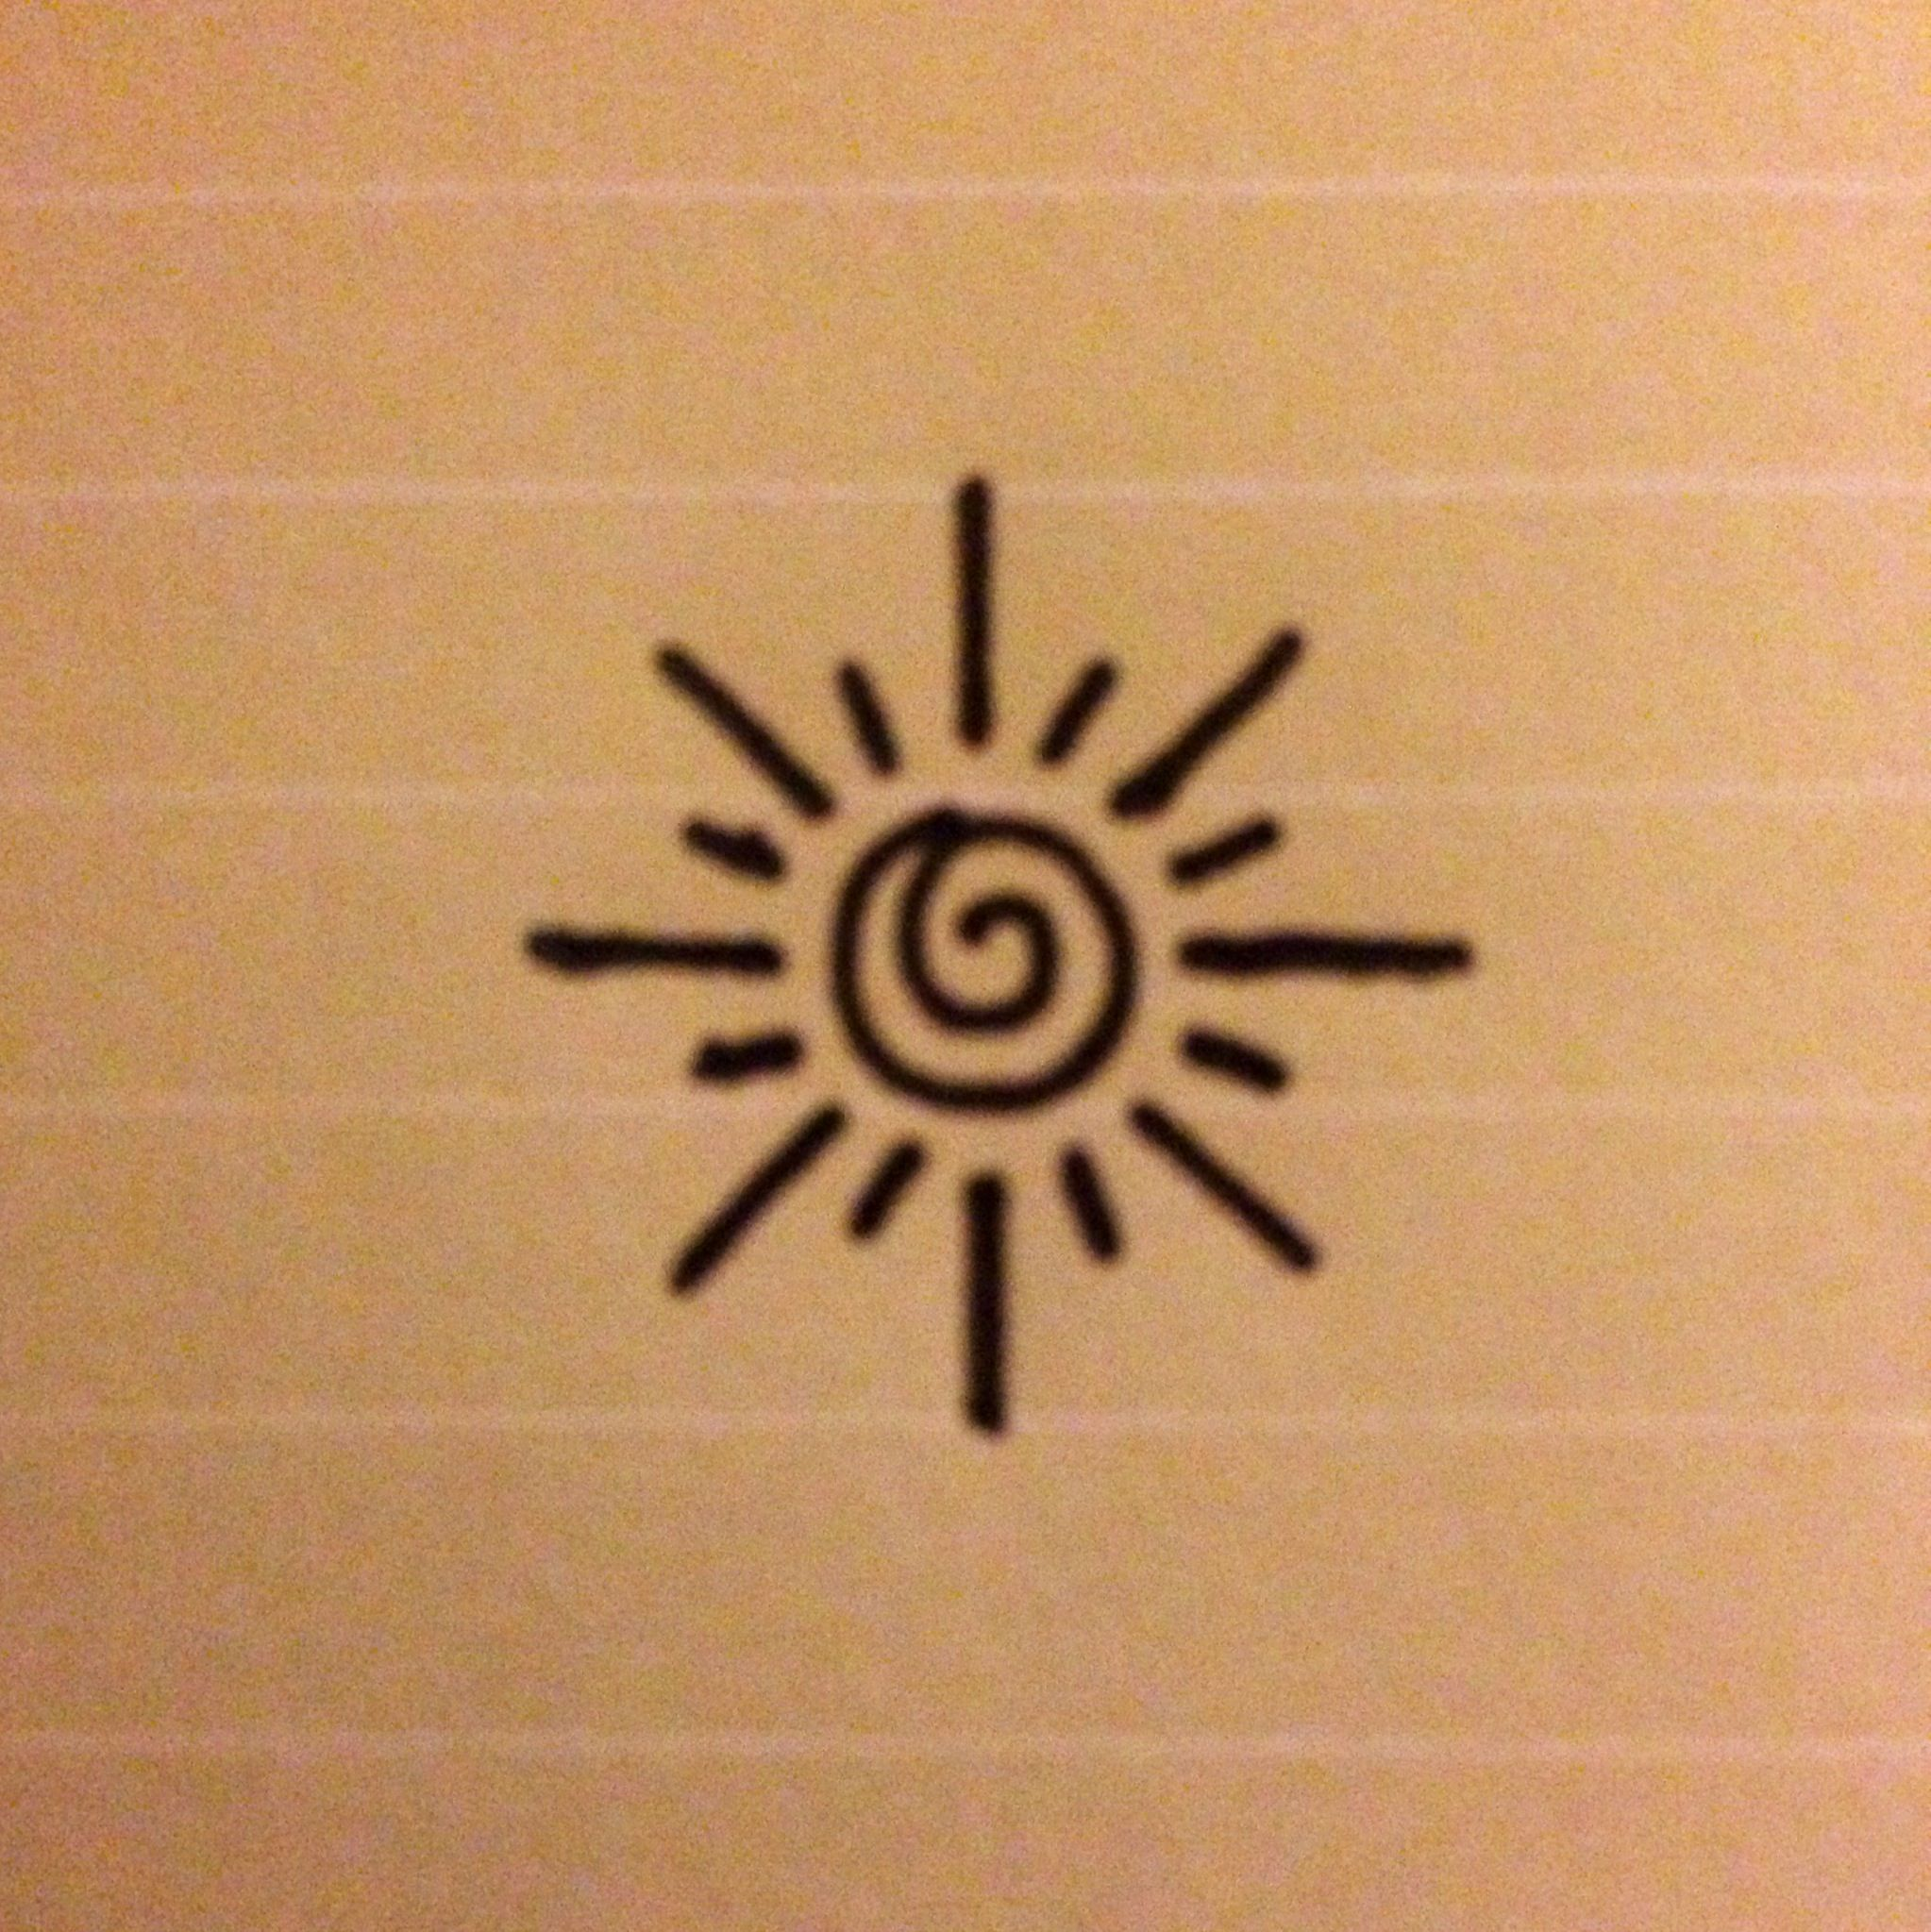 Download Free Is A Small Simple Design Of Sun Perhaps For